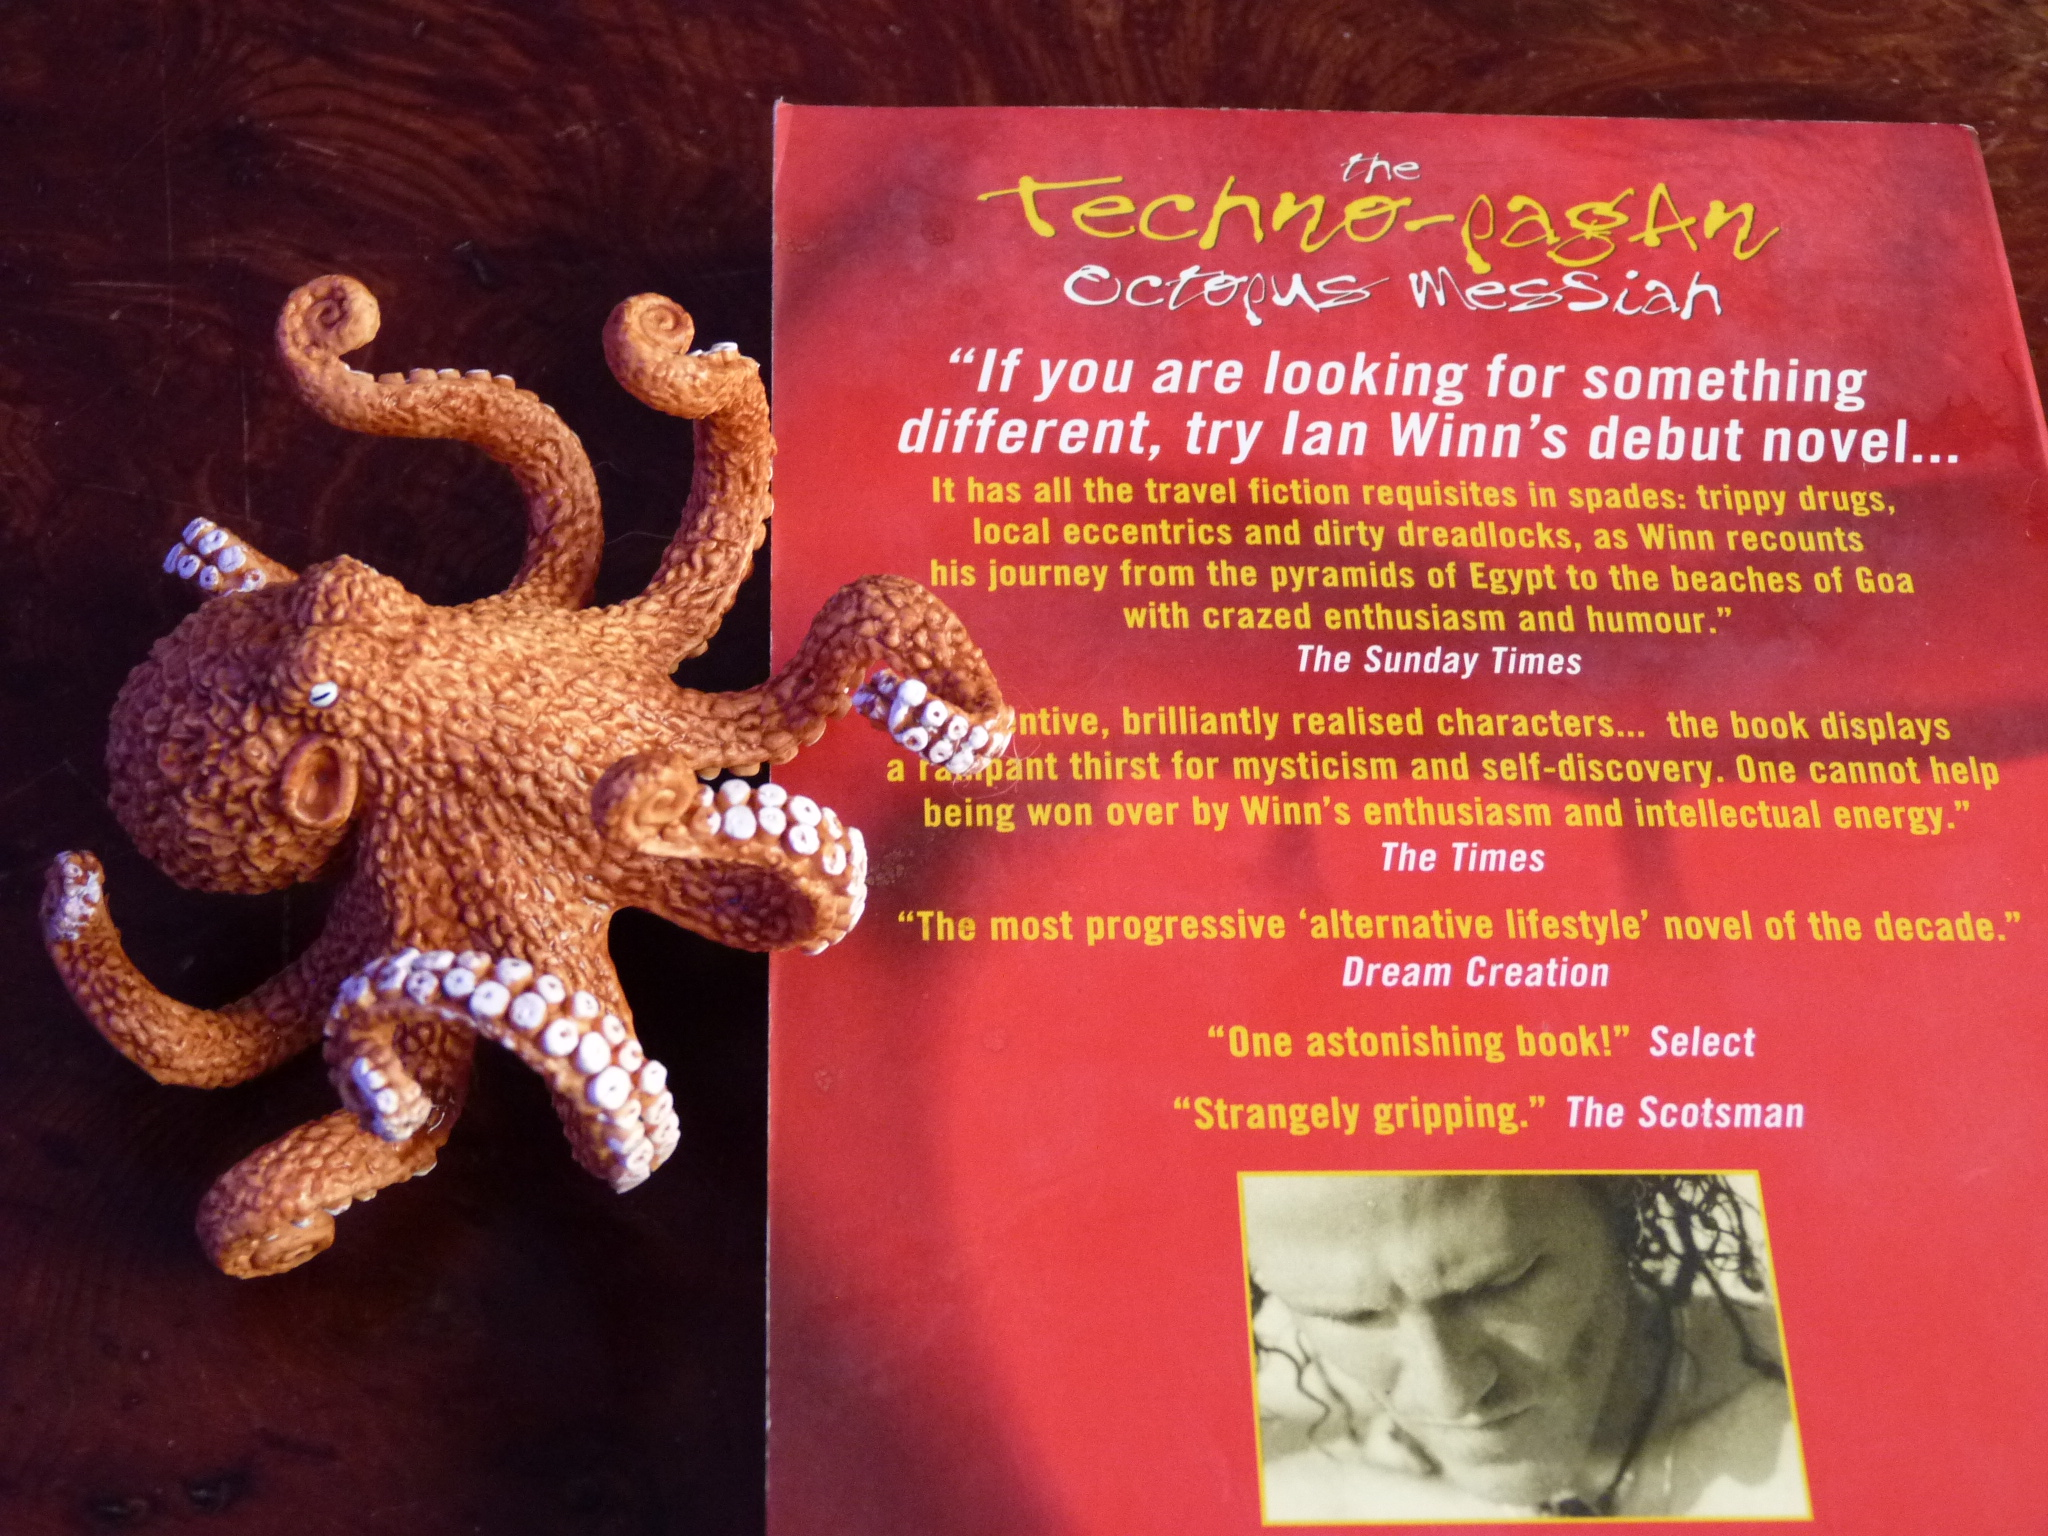 But the octopus won many slams, headlined shows and TPOM got some good reviews - (despite it needing loads more work the octopus says now with 20/20 hindsight as he releases the 20th anniversary edition for its second coming in this, the Kaliyuga, the last of four great Hindu ages when